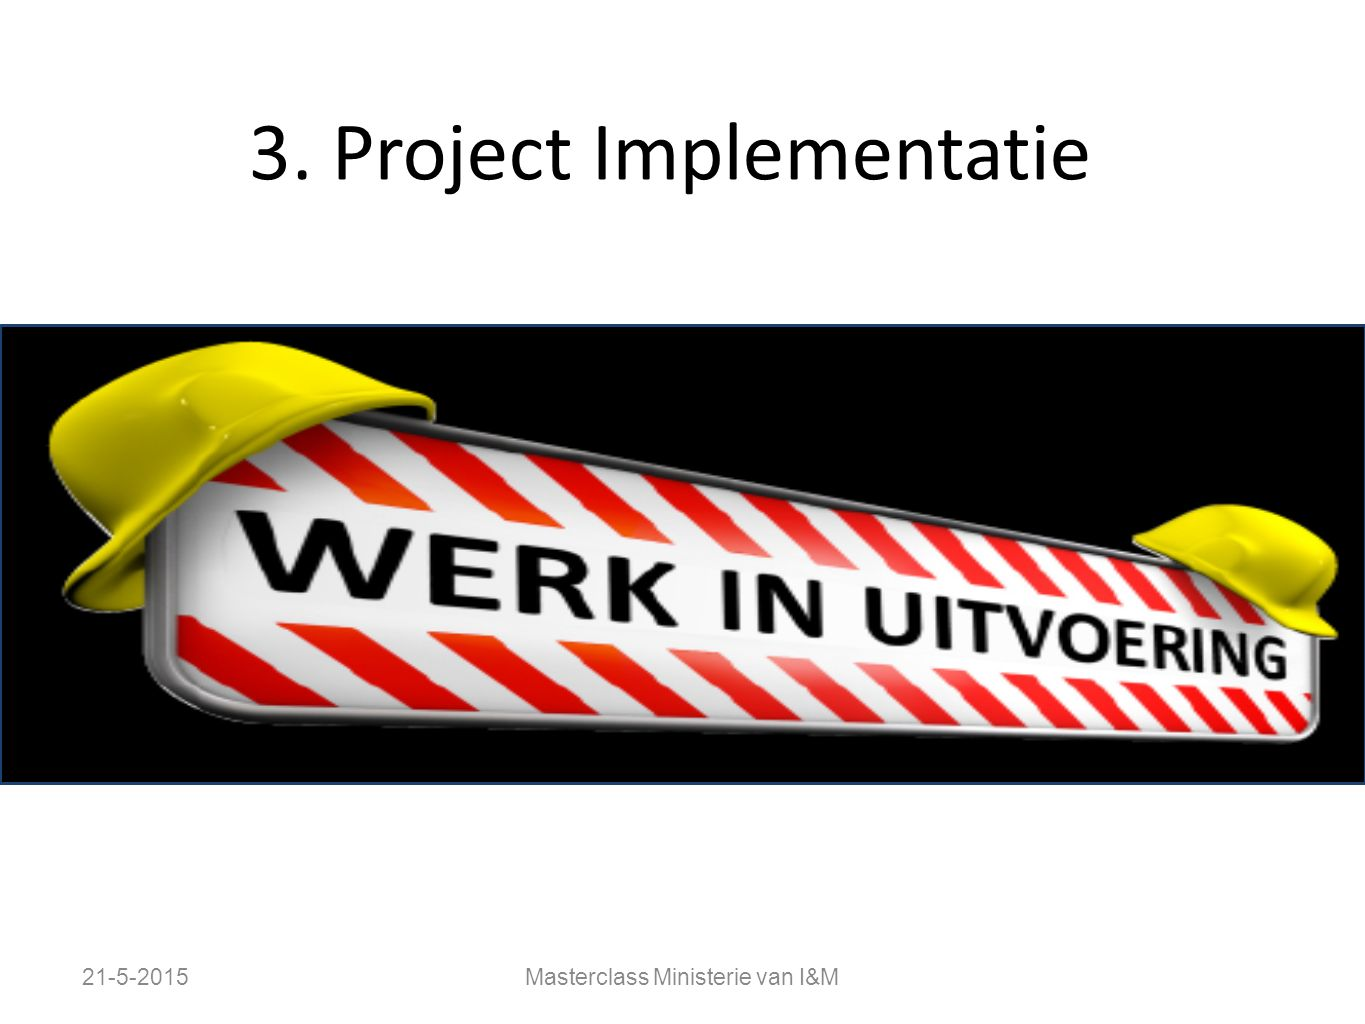 3. Project Implementatie